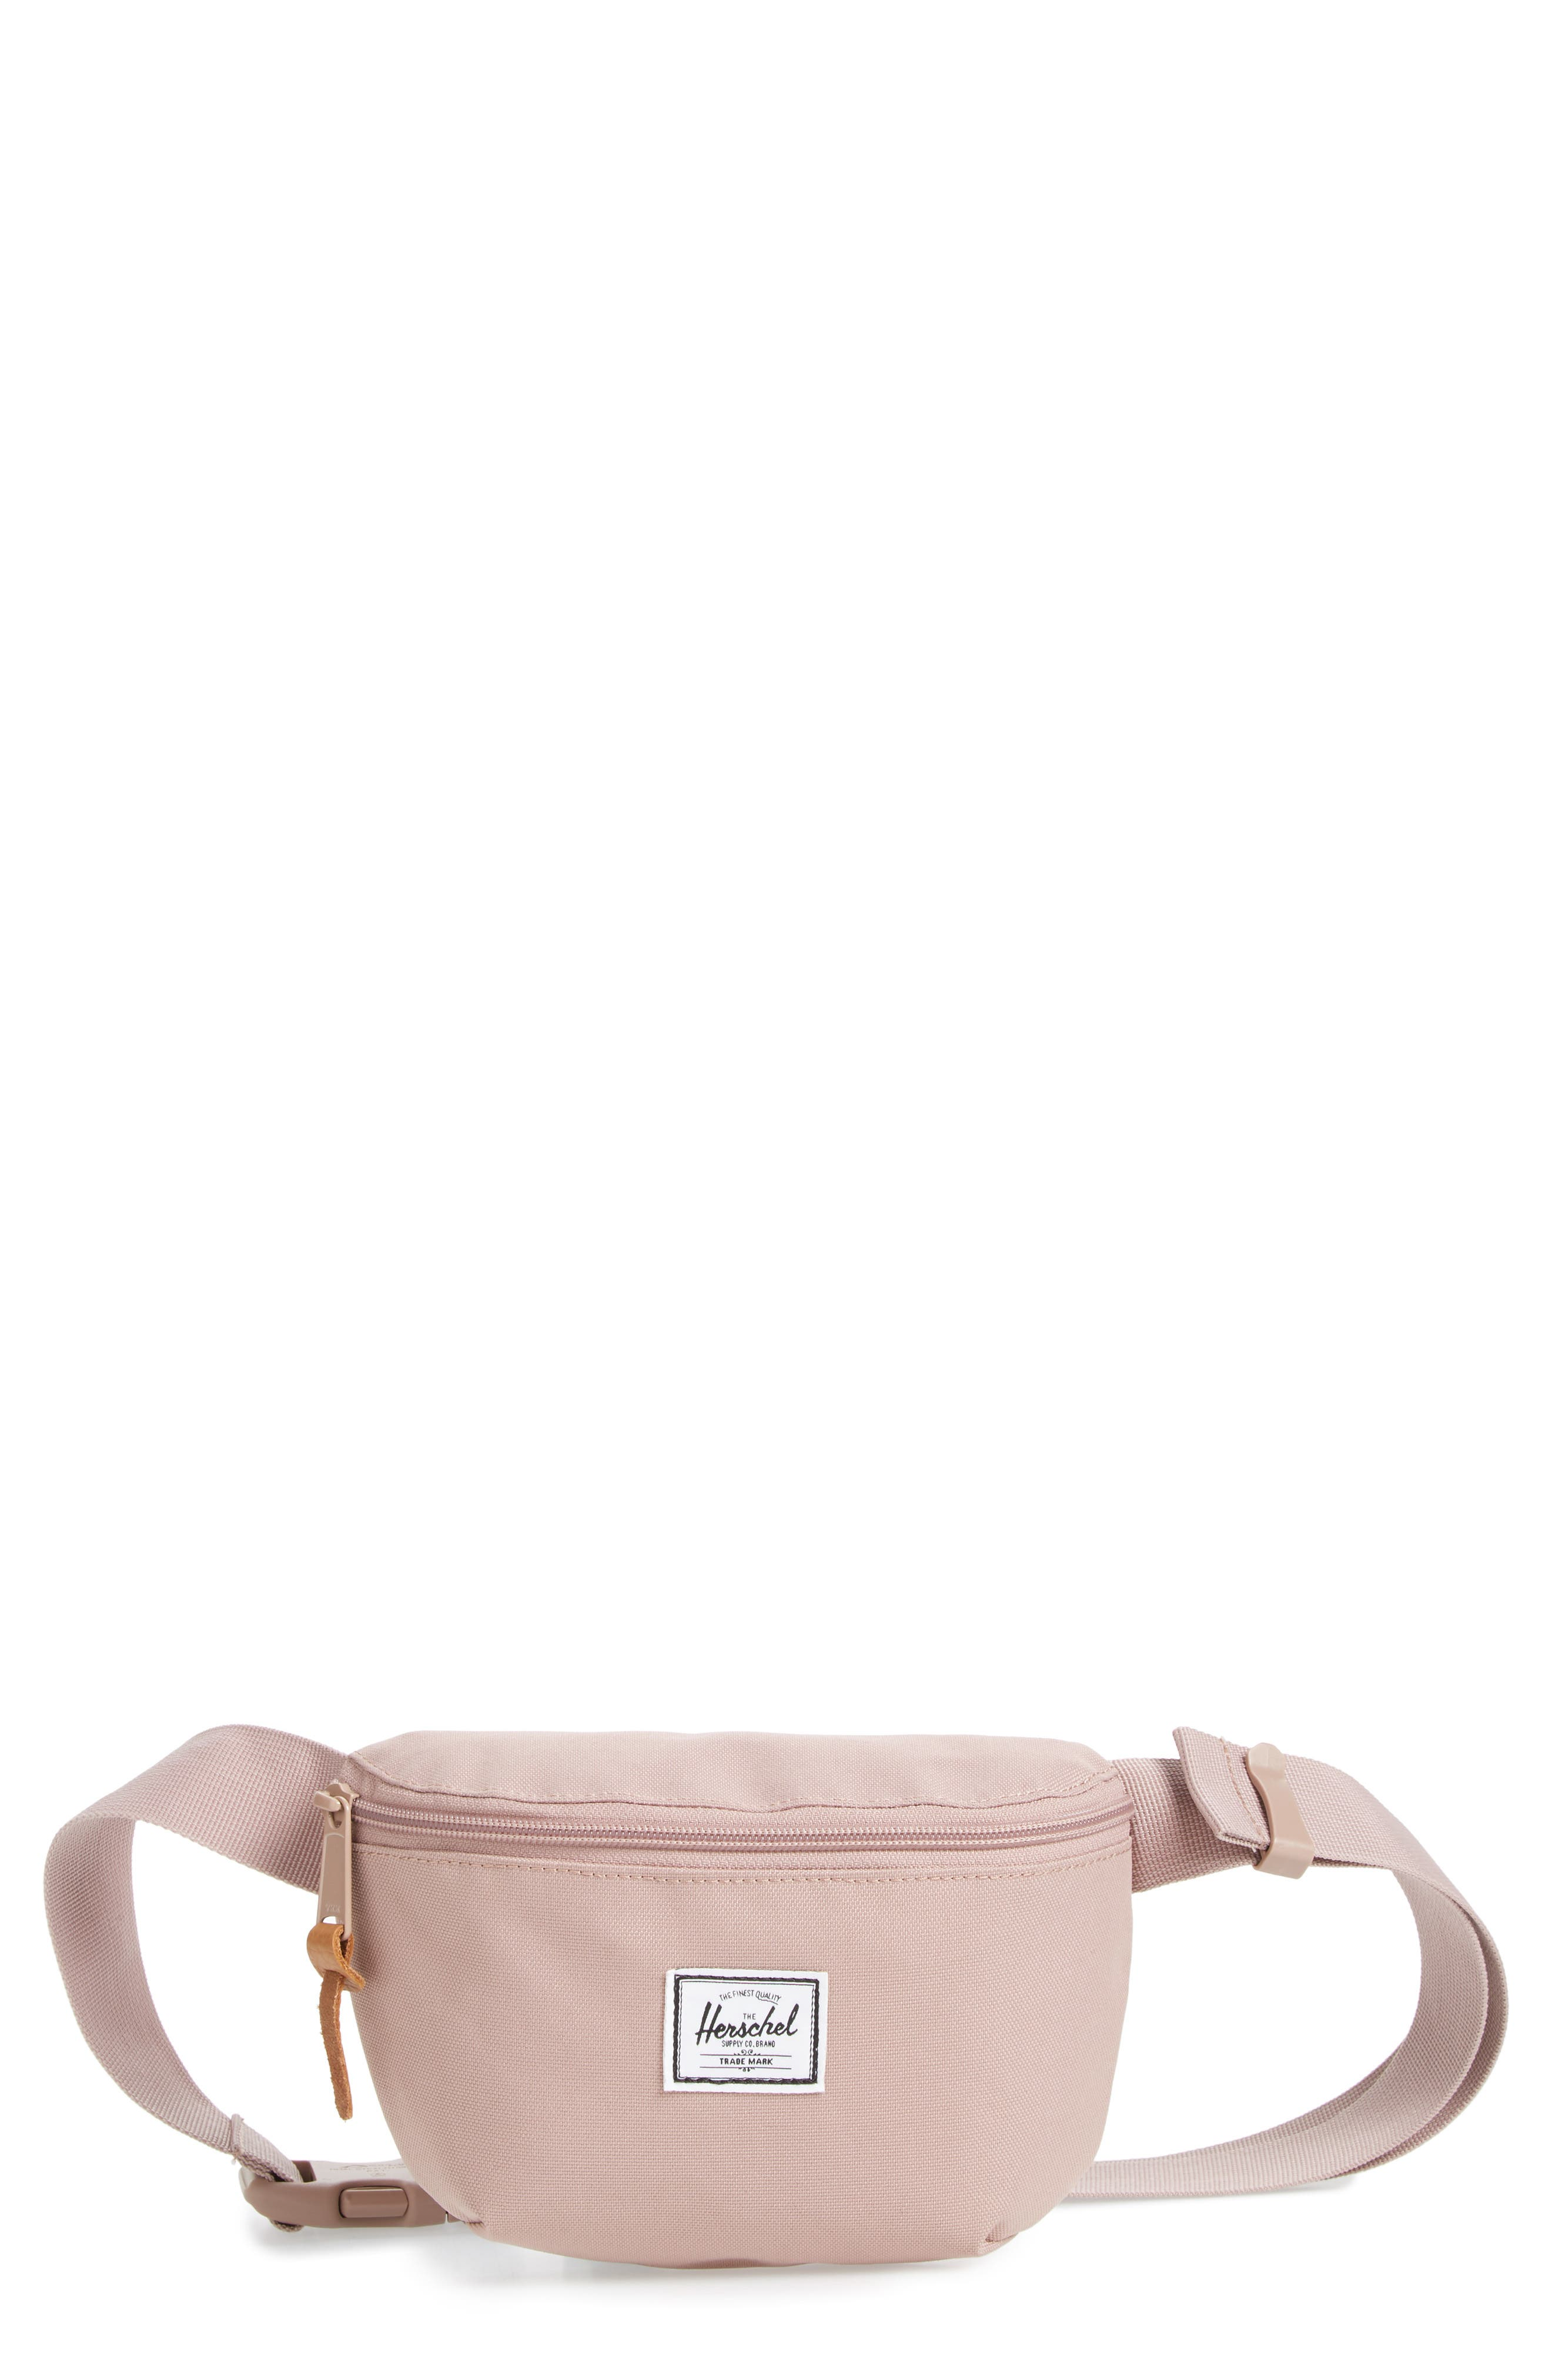 Fourteen Belt Bag,                         Main,                         color, ASH ROSE